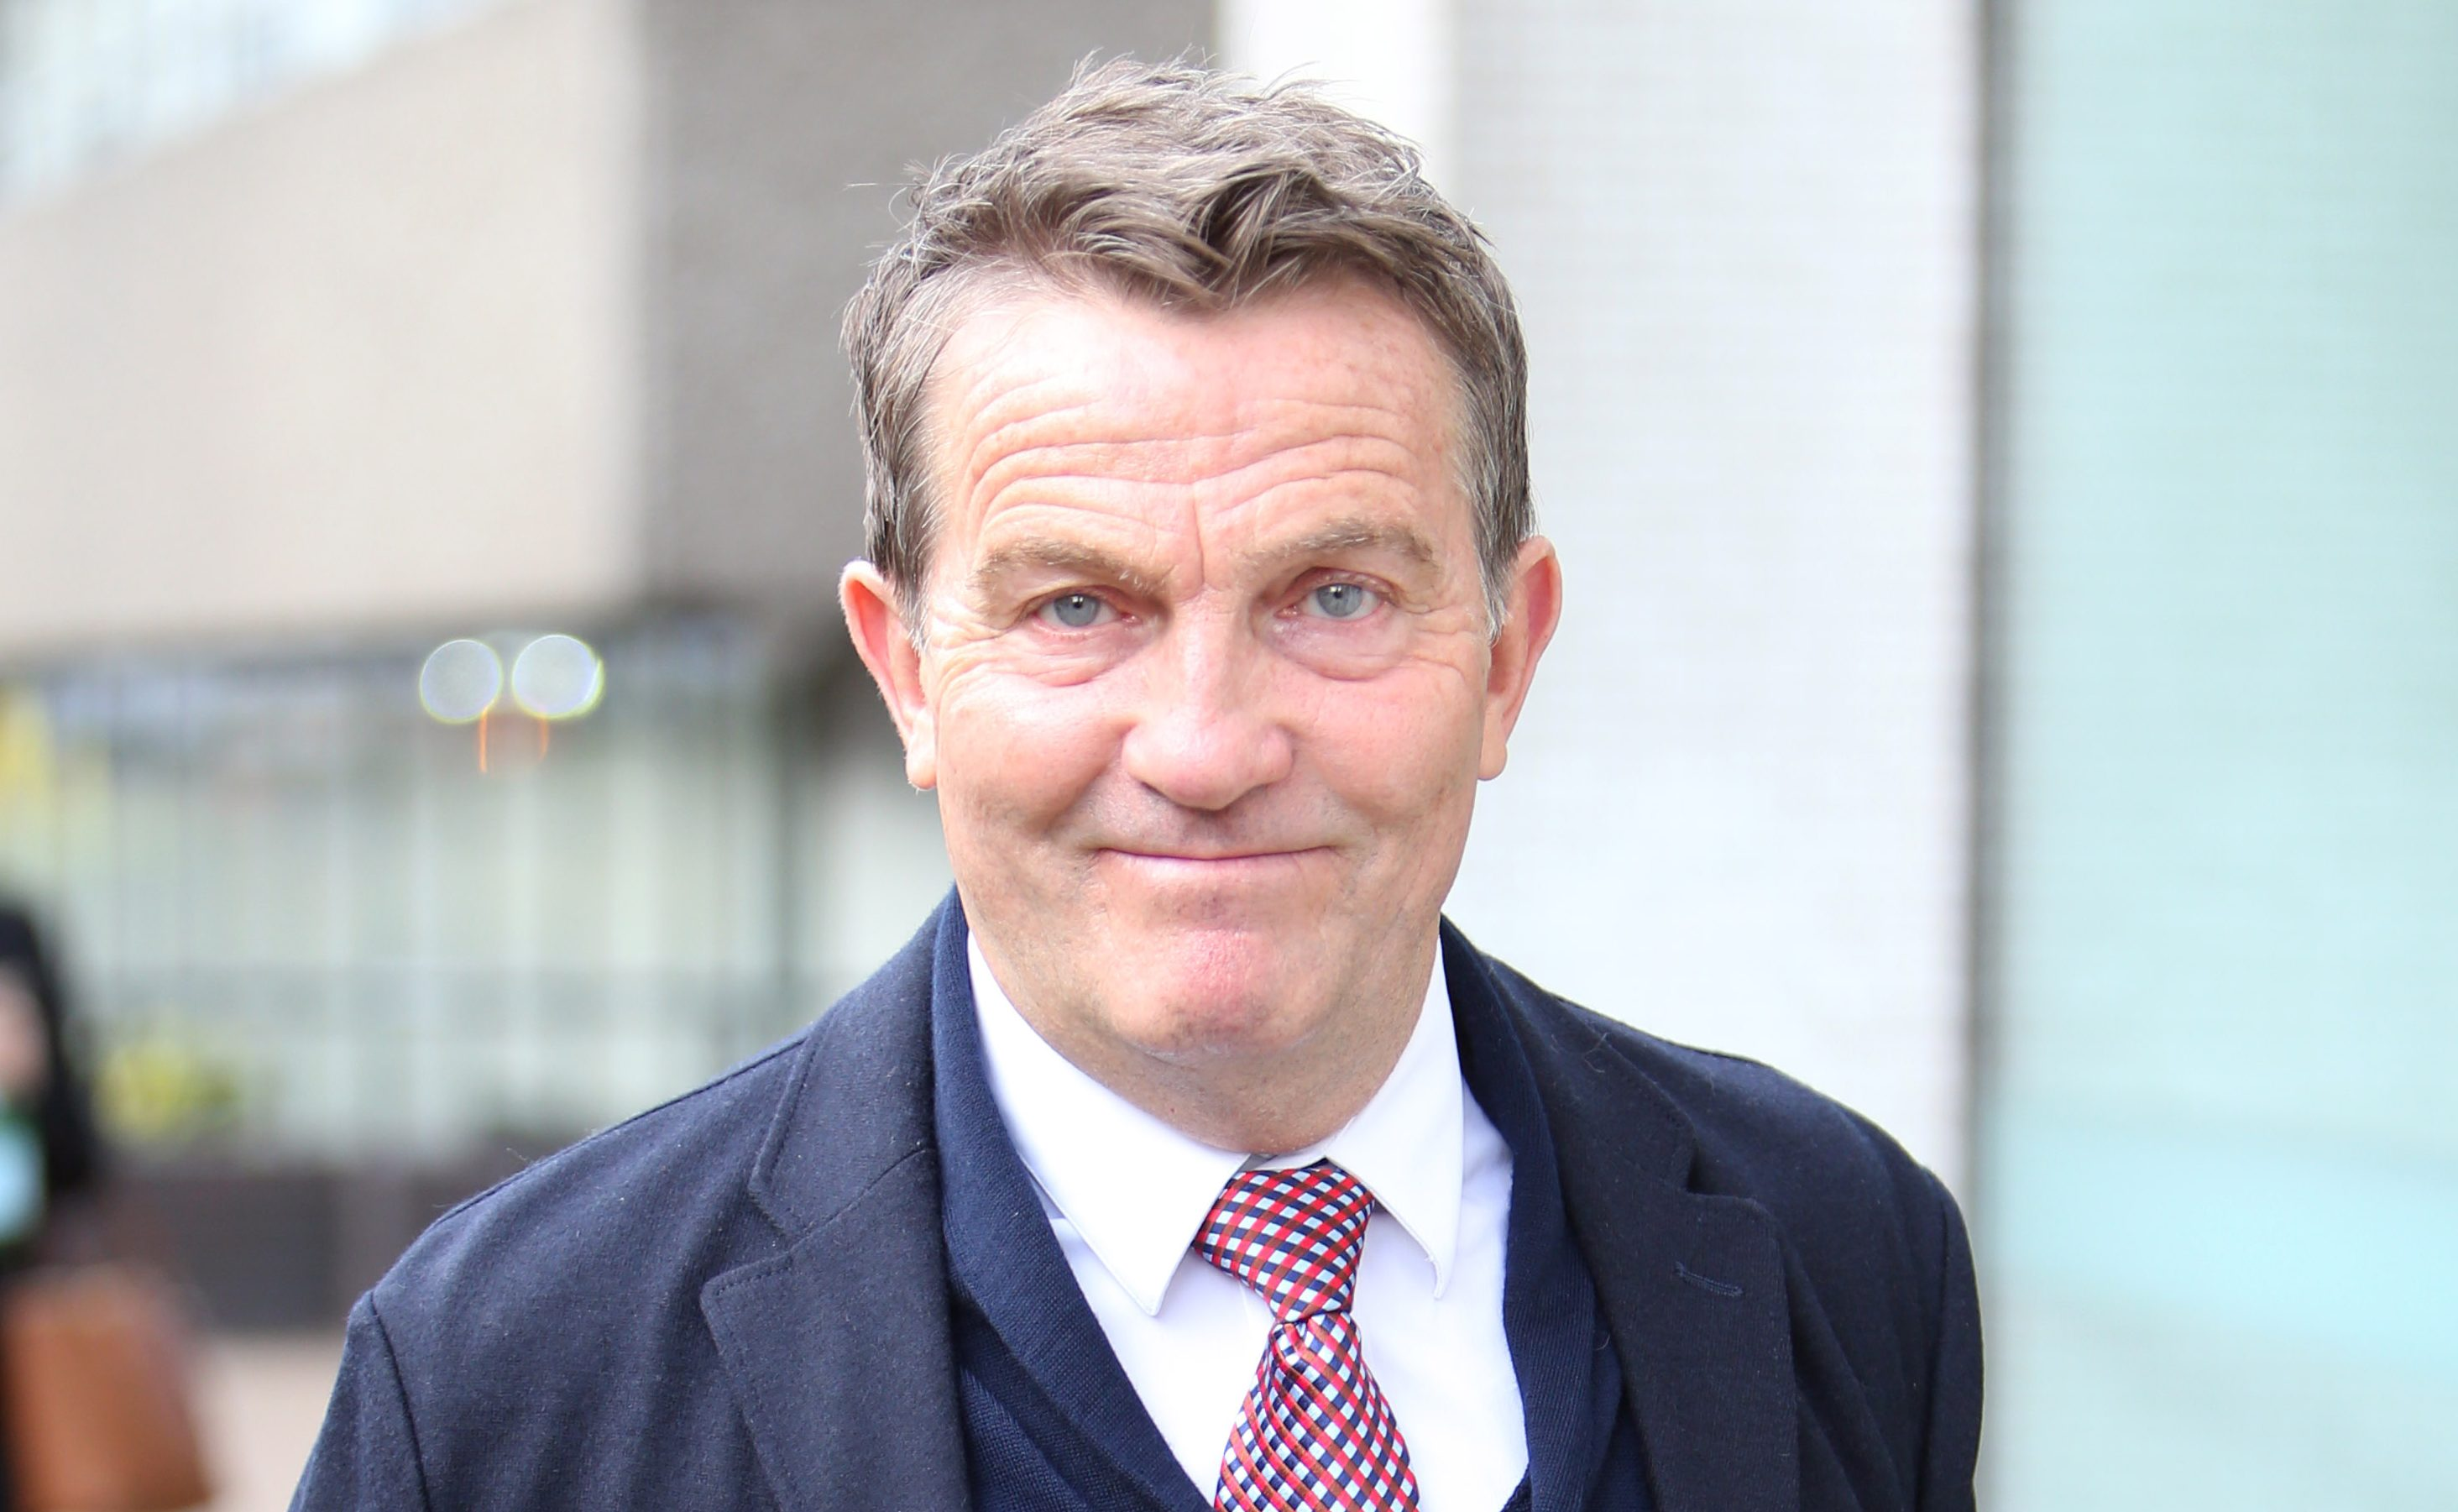 Bradley Walsh gives himself a headache with VERY energetic headbanging on way to work